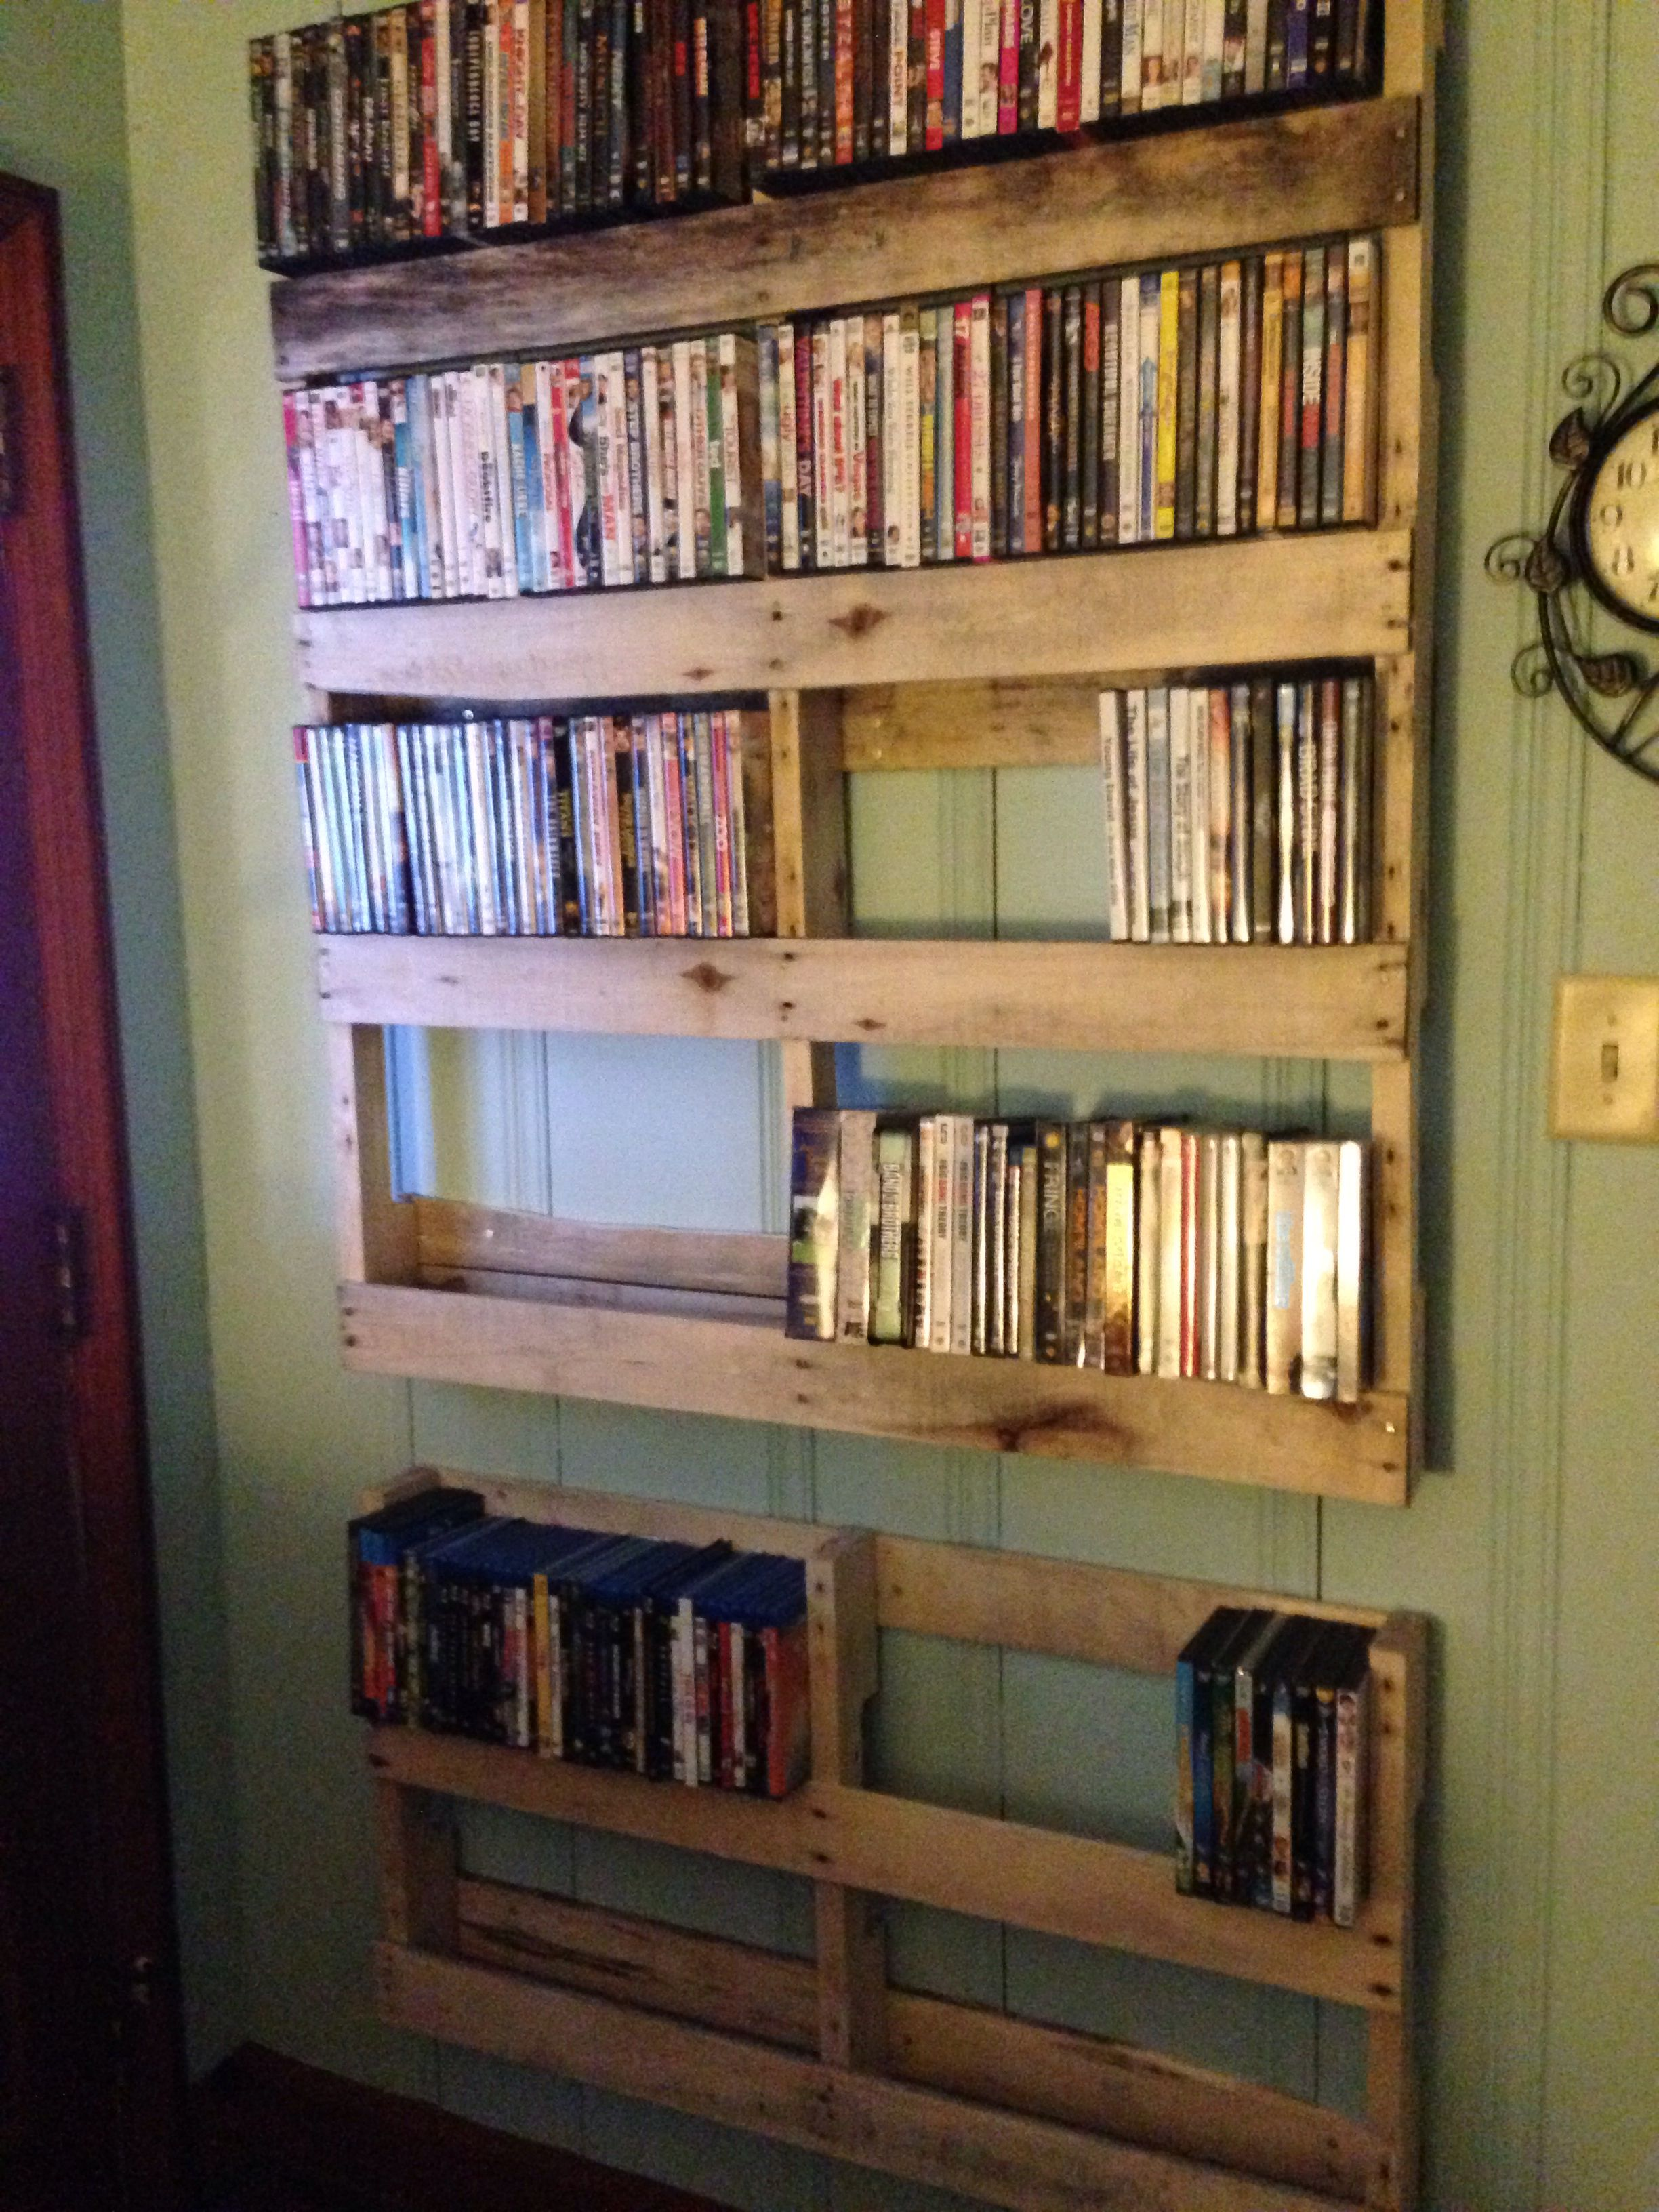 15 unique stylish cd and dvd storage ideas storage ideas pinterest dvd shelves pallets. Black Bedroom Furniture Sets. Home Design Ideas